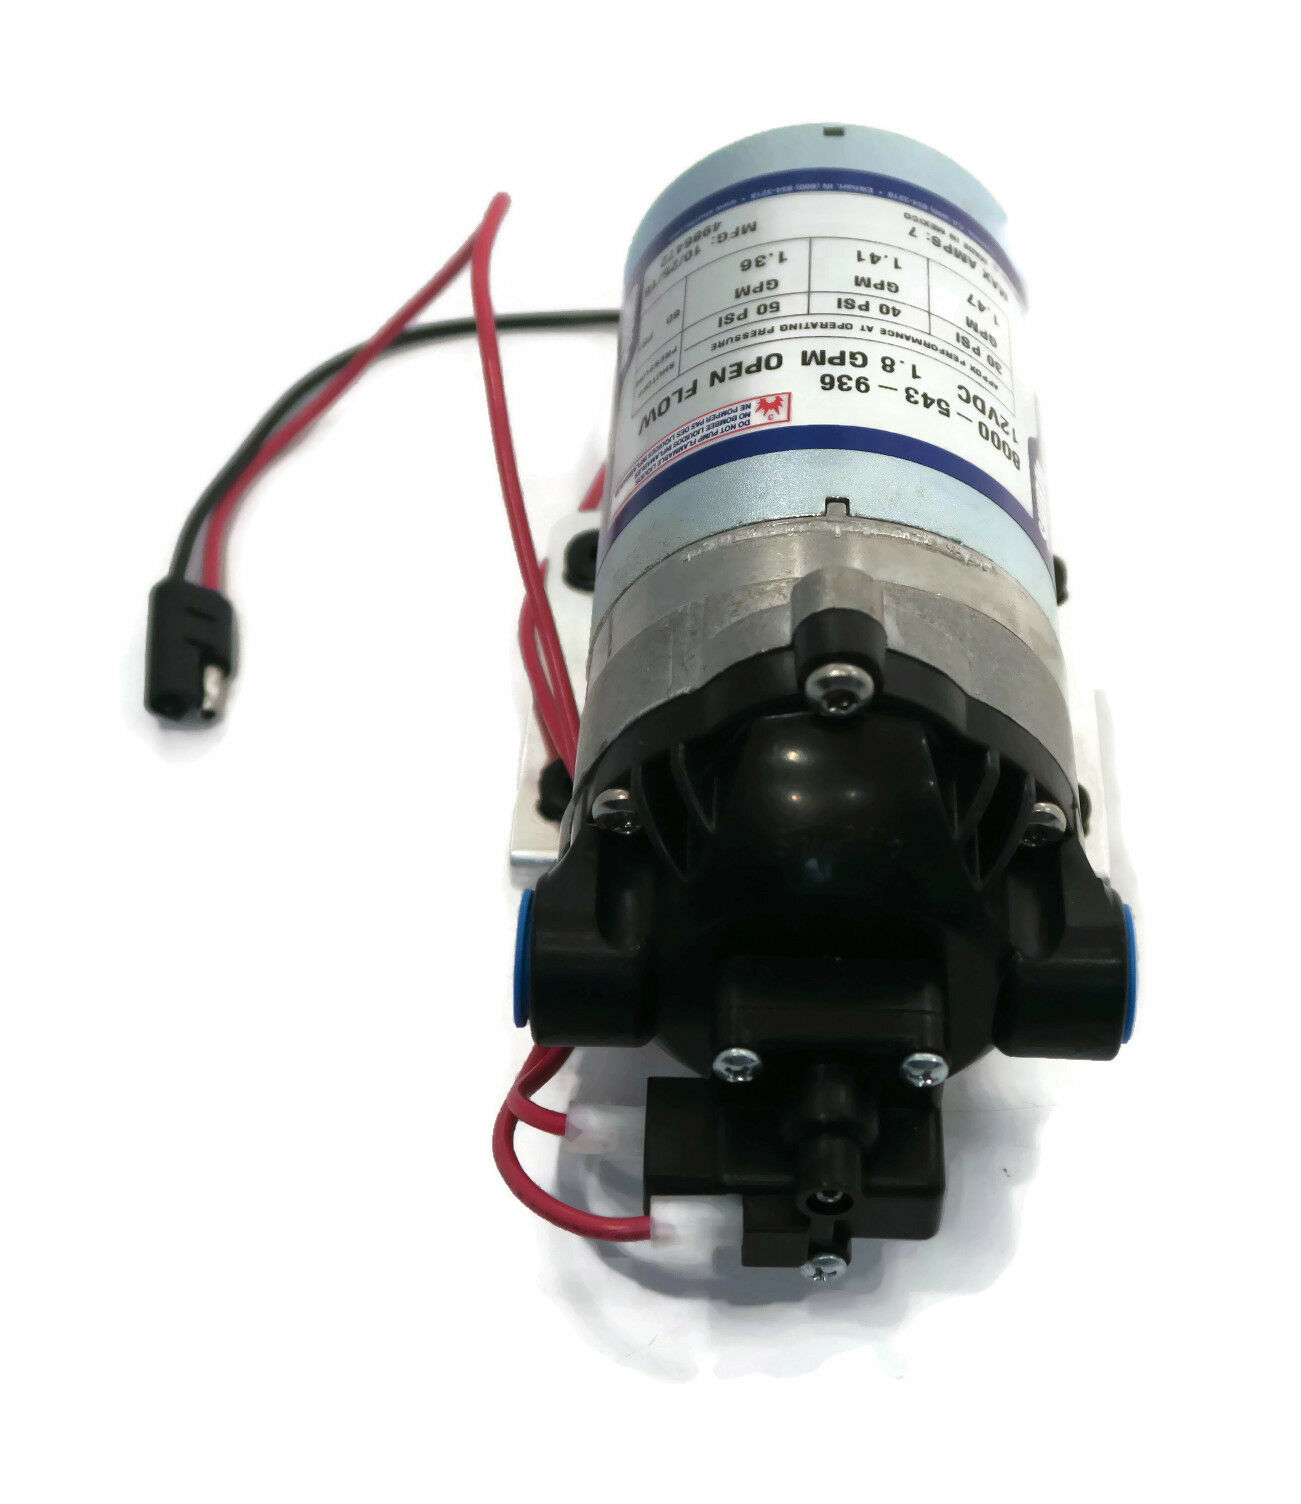 New Shurflo 12v Electric Water Transfer Pump W Wiring Harness 18 Psi Gpm 60